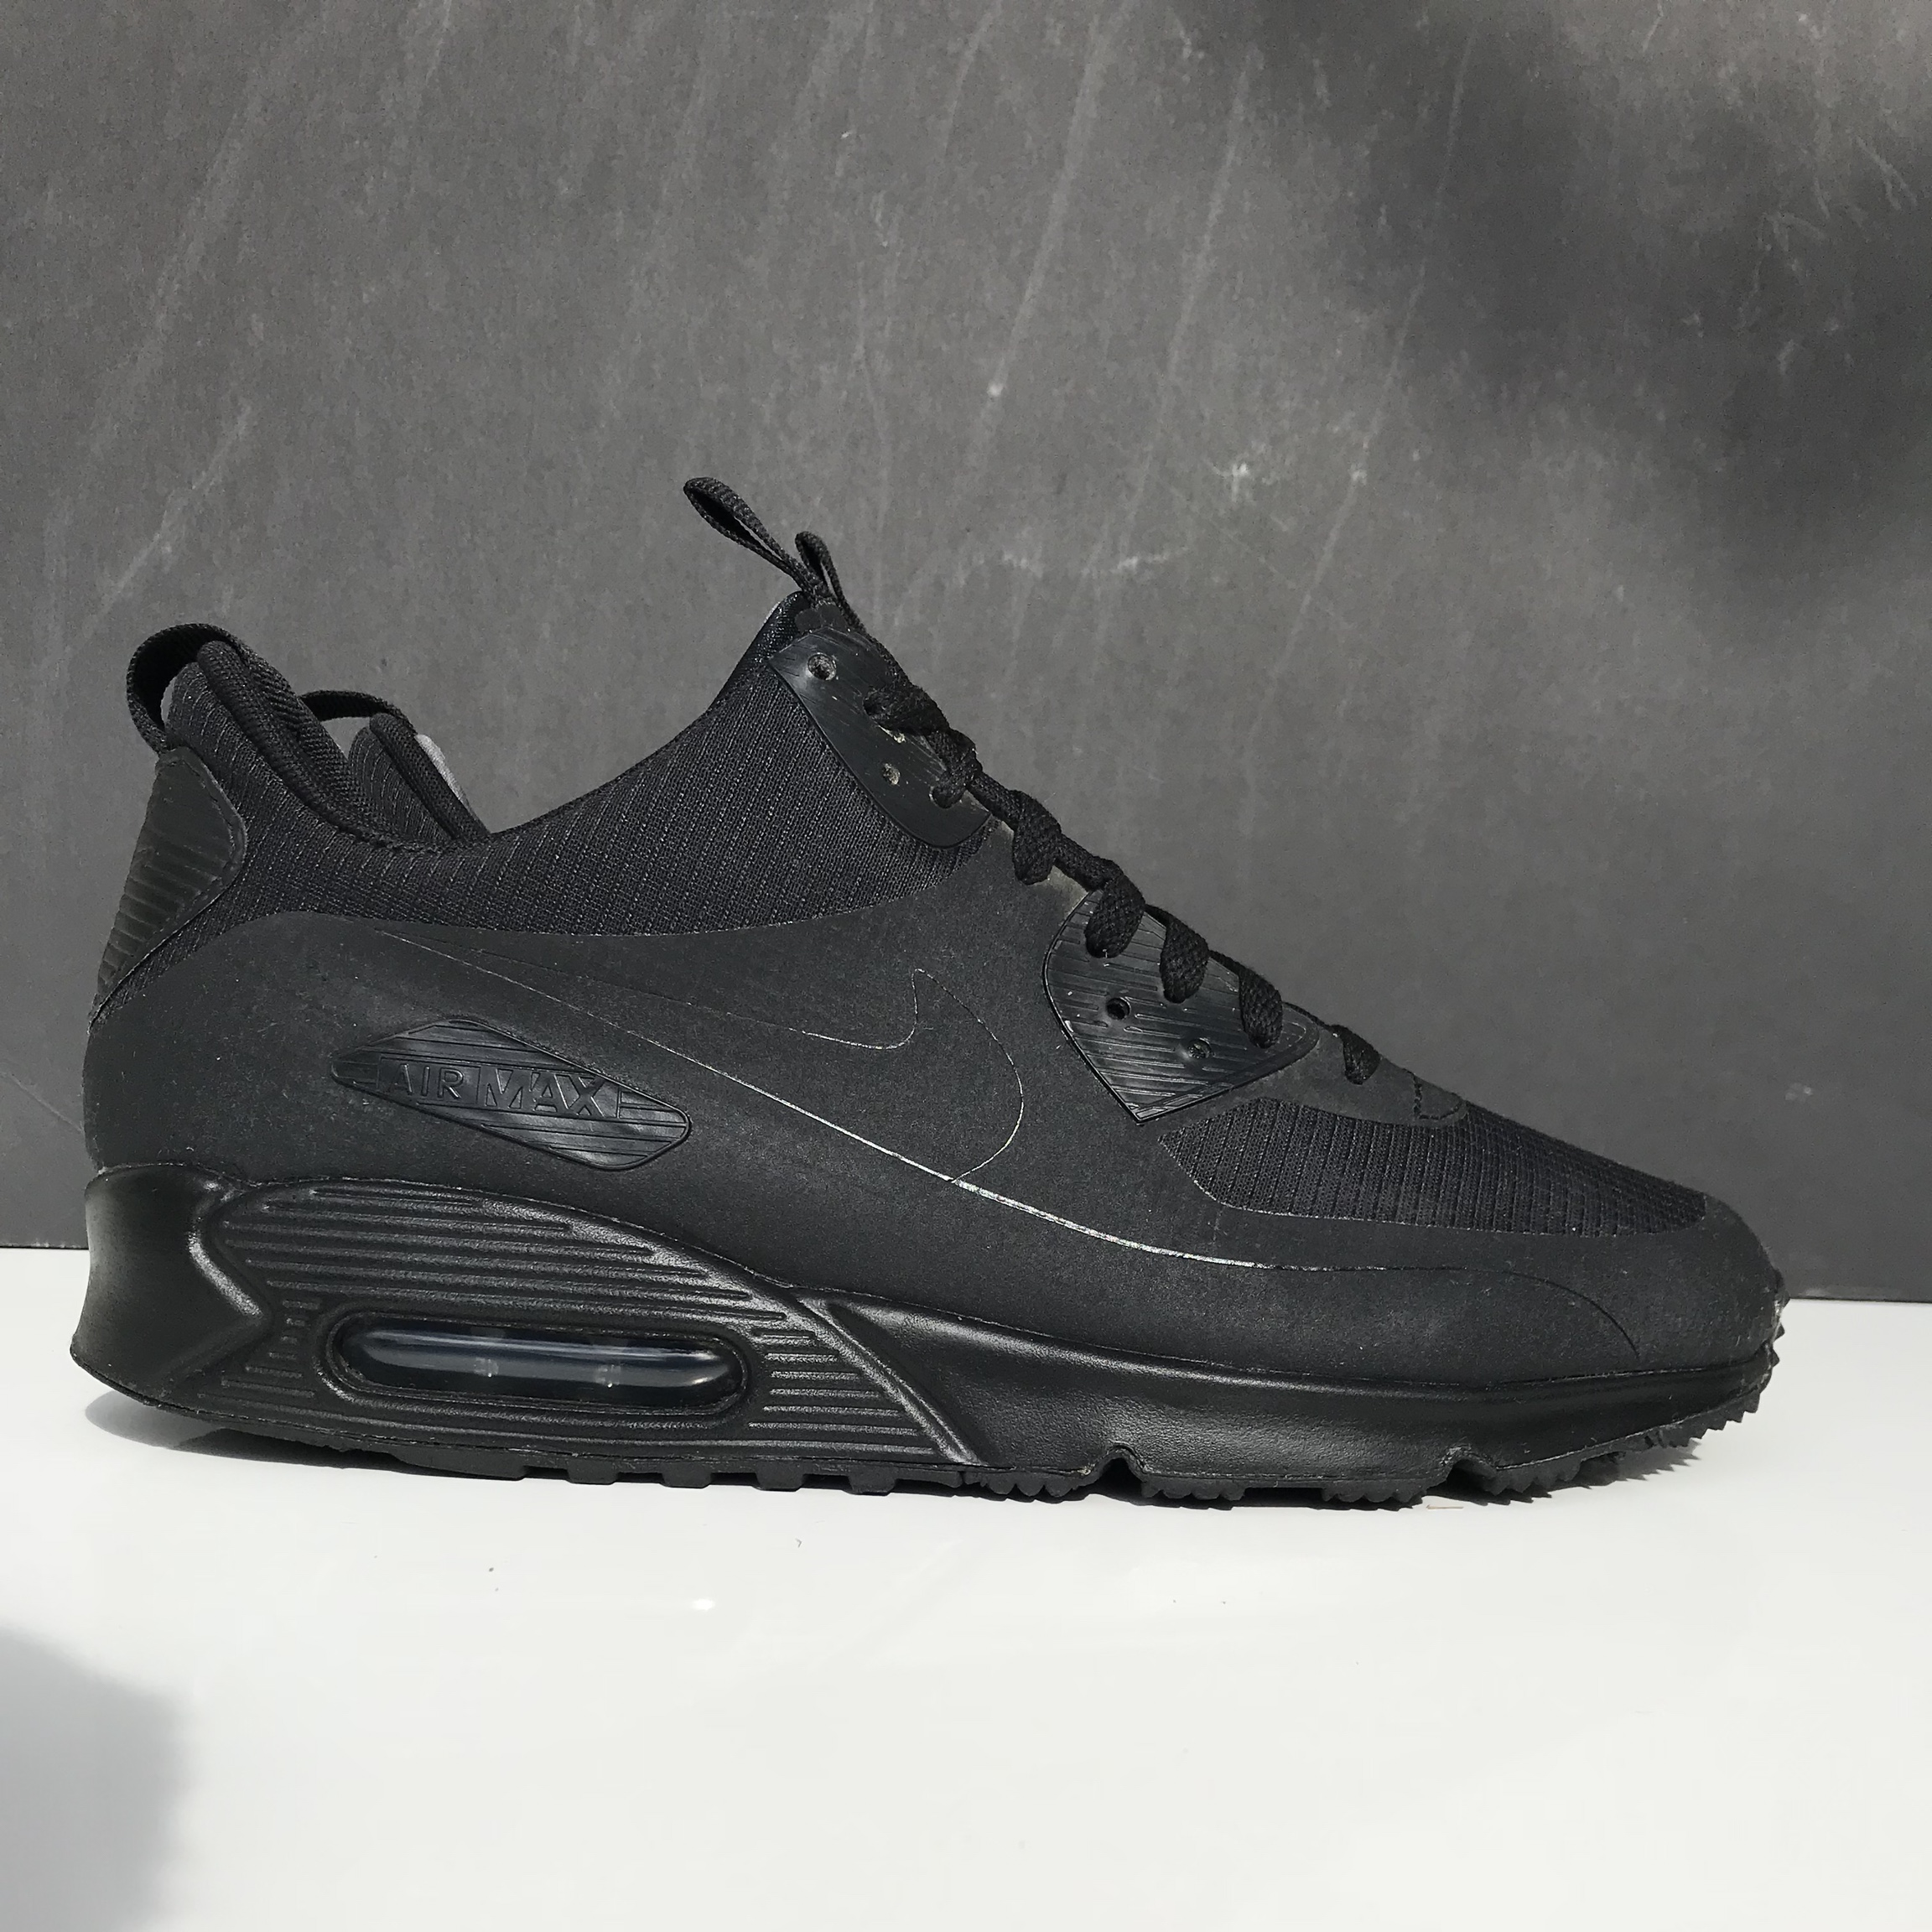 Christmas Special Offer. Best Nike Air Max 90 Ultra Mid